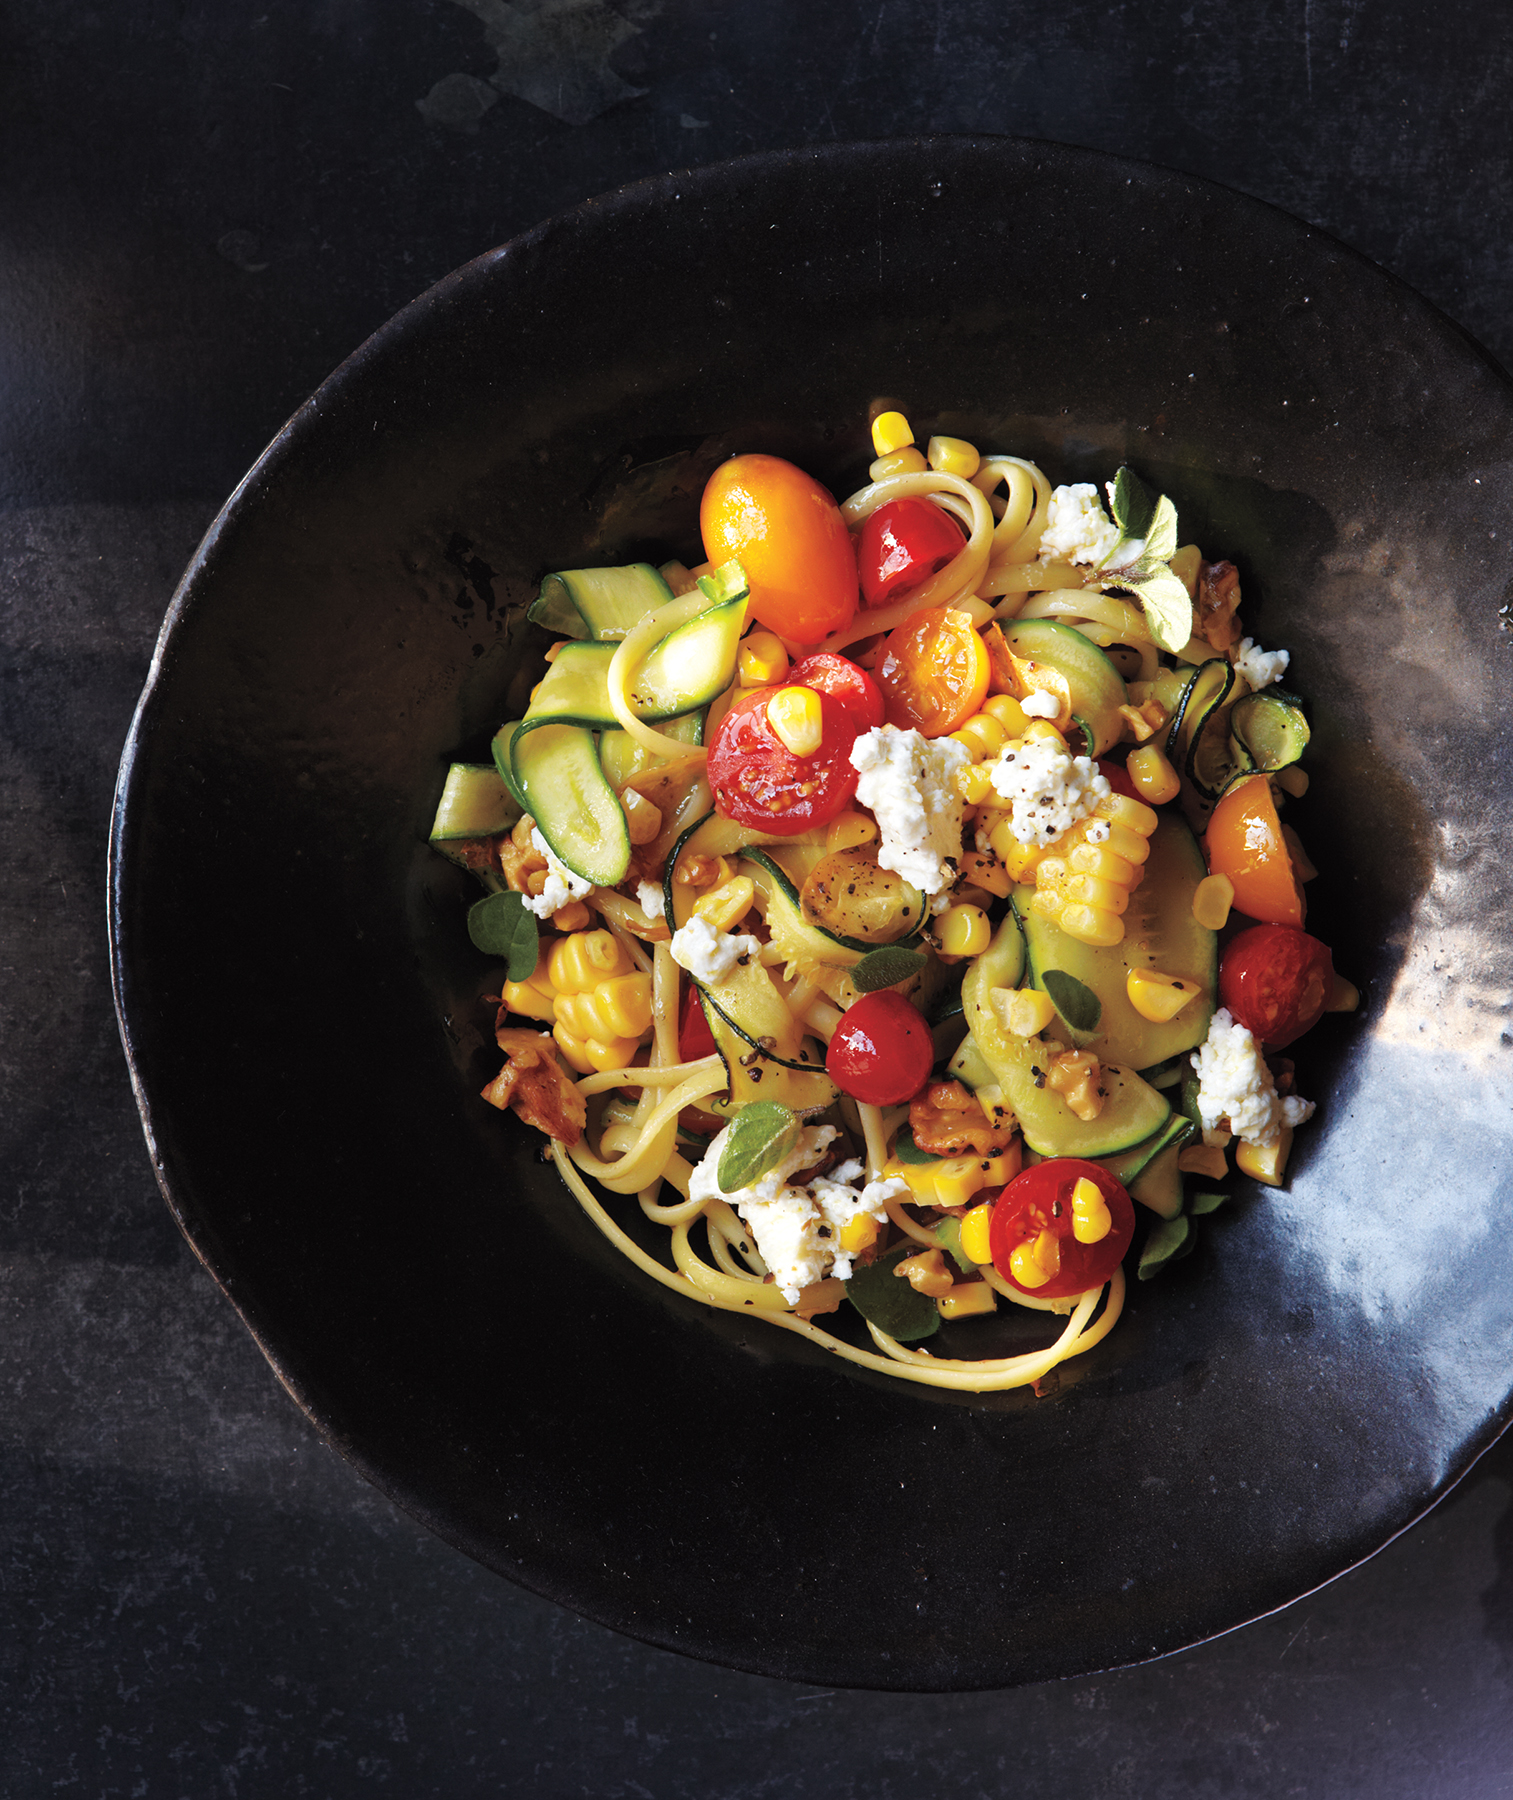 Linguine With Summer Vegetables and Goat Cheese